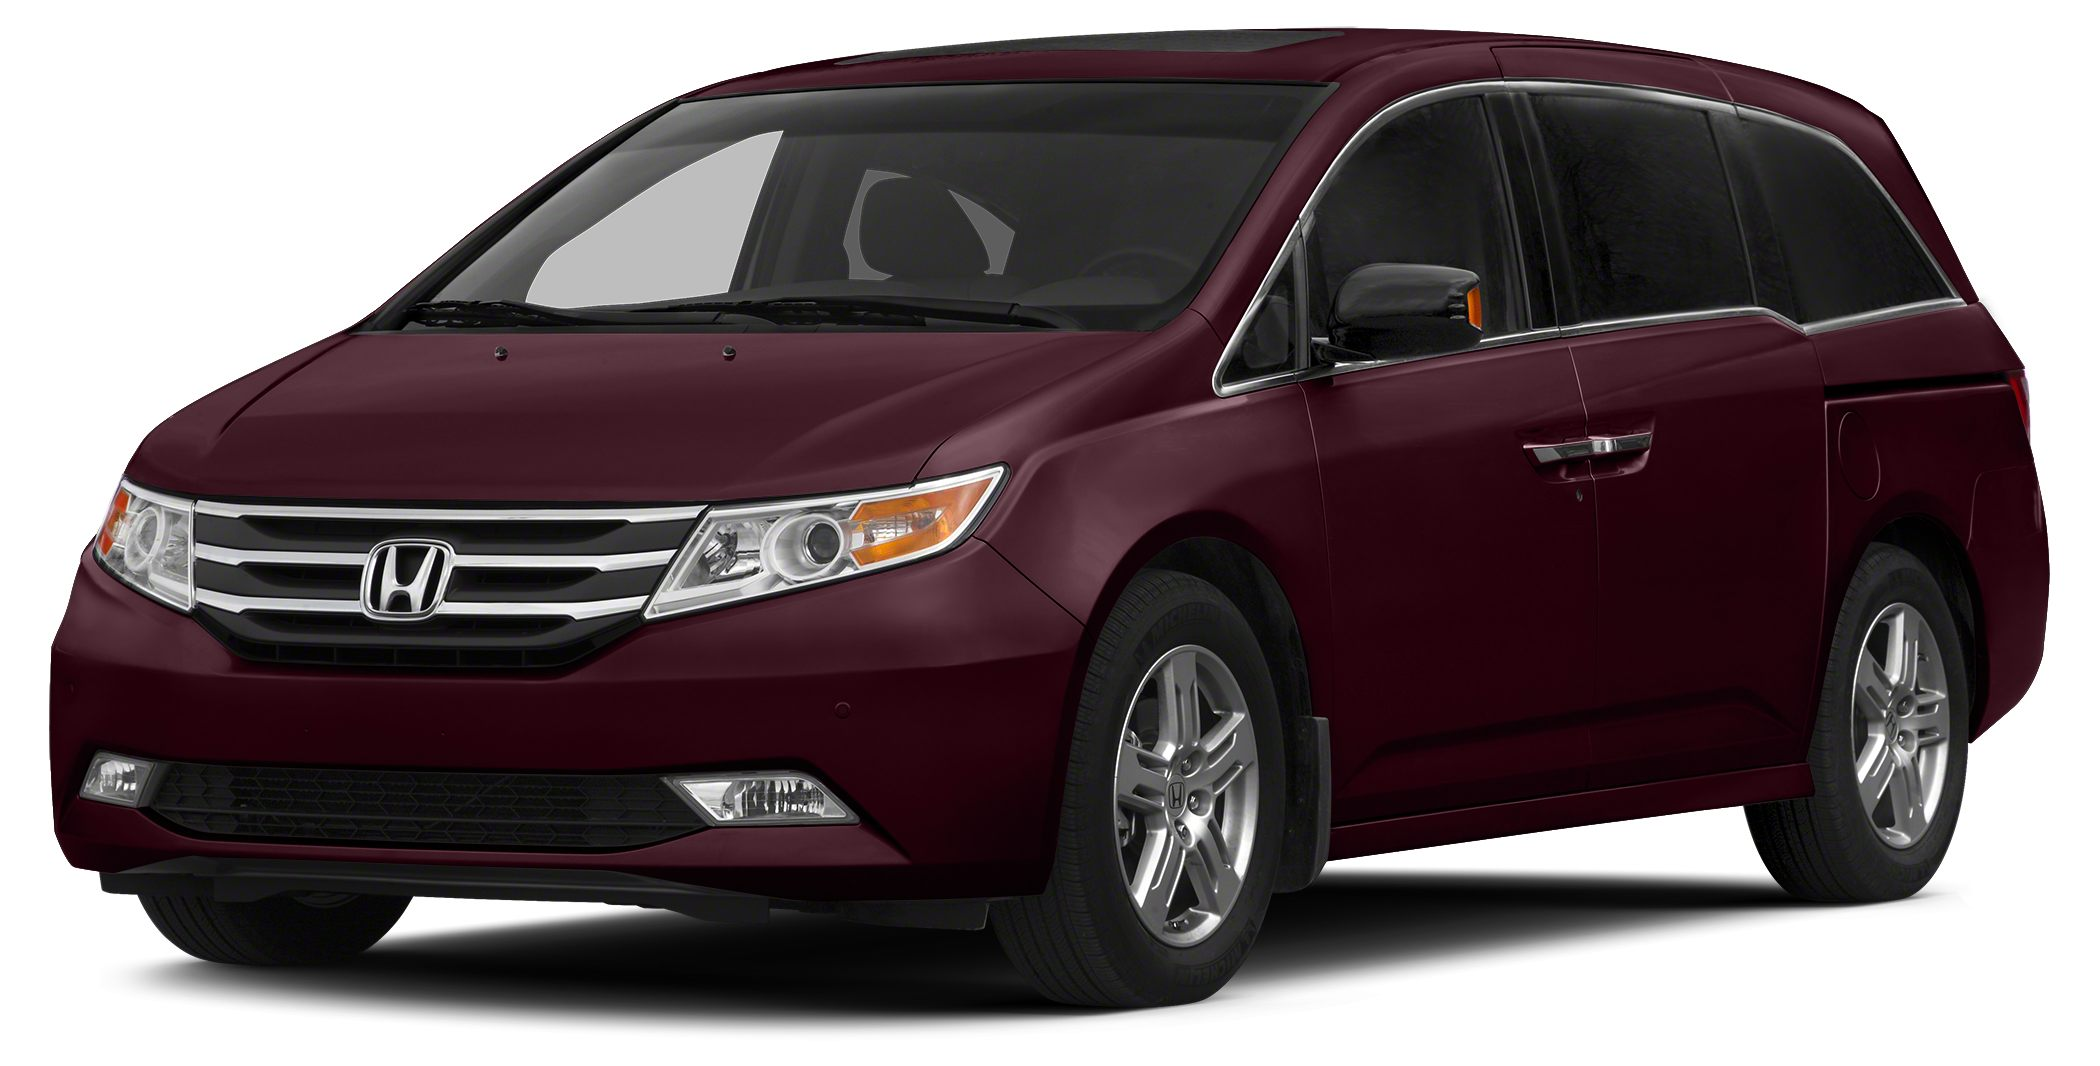 2013 Honda Odyssey Touring Elite 2013 Honda Odyssey Touring Elite One Owner NAVIGATIONPOWER MOO